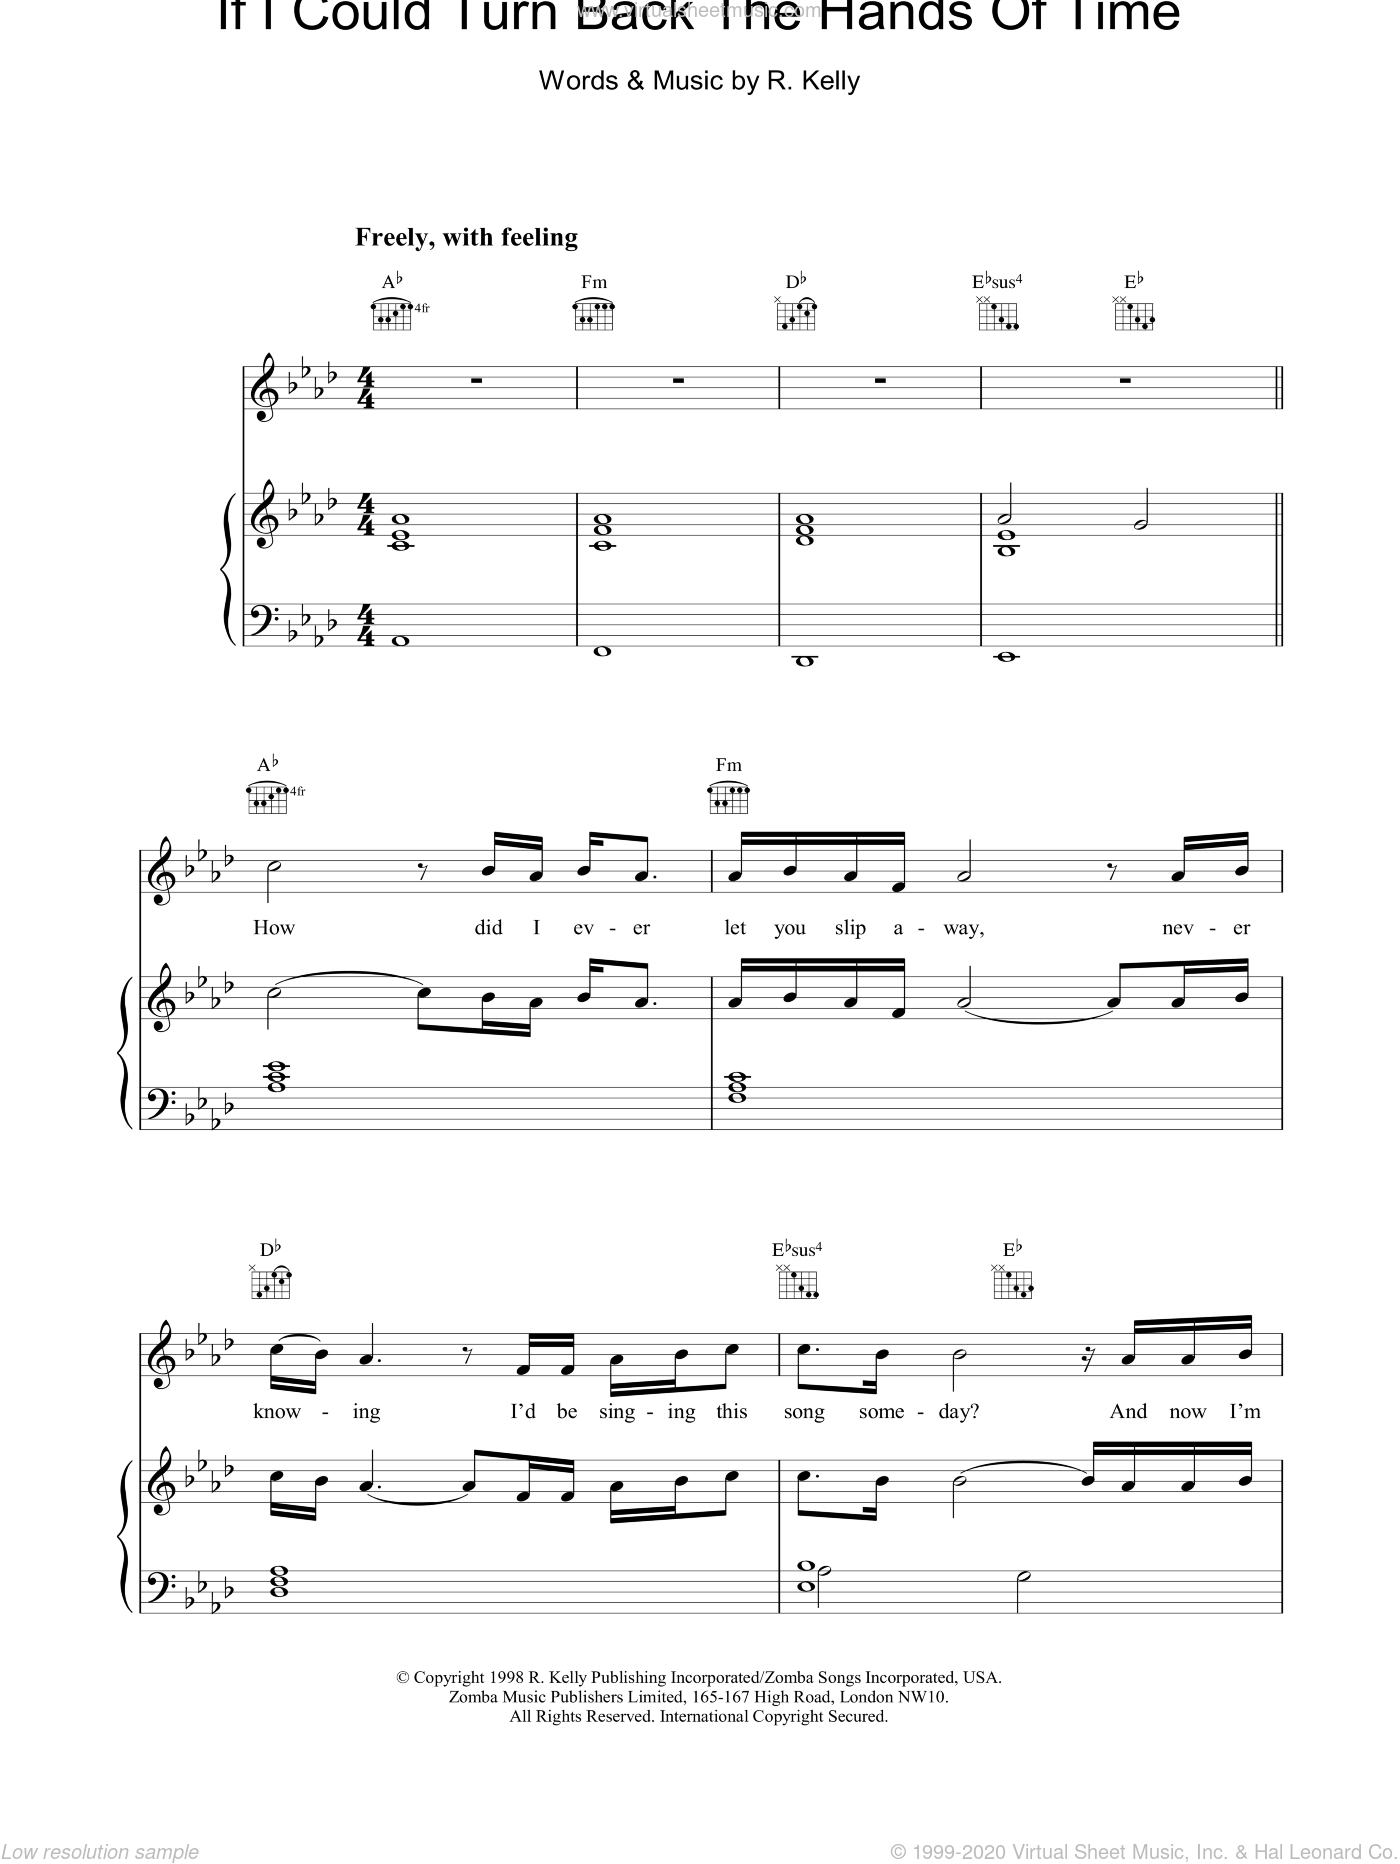 If I Could Turn Back The Hands Of Time sheet music for voice, piano or guitar by Robert Kelly. Score Image Preview.